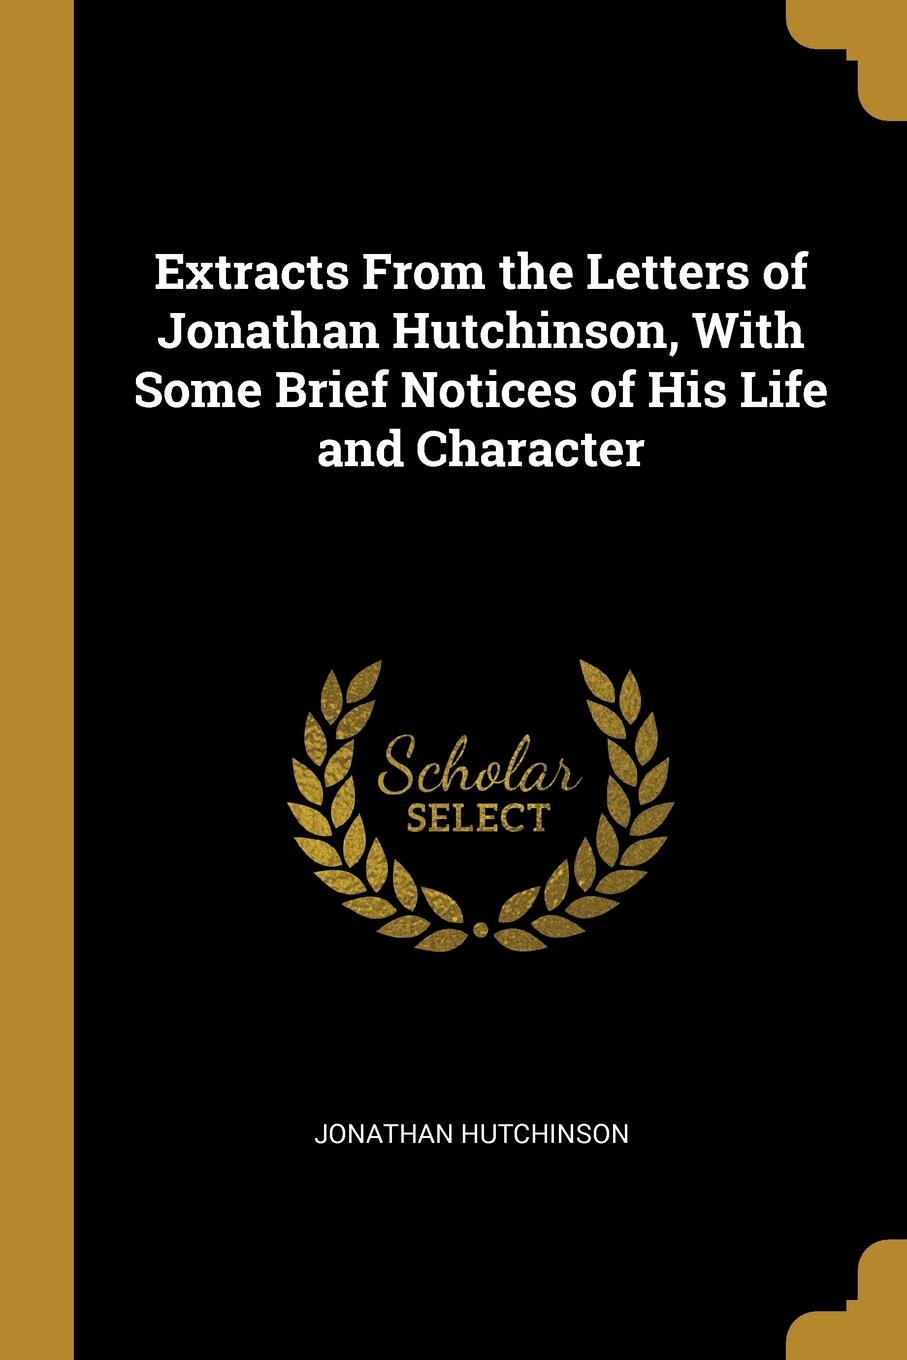 Jonathan Hutchinson Extracts From the Letters of Hutchinson, With Some Brief Notices His Life and Character